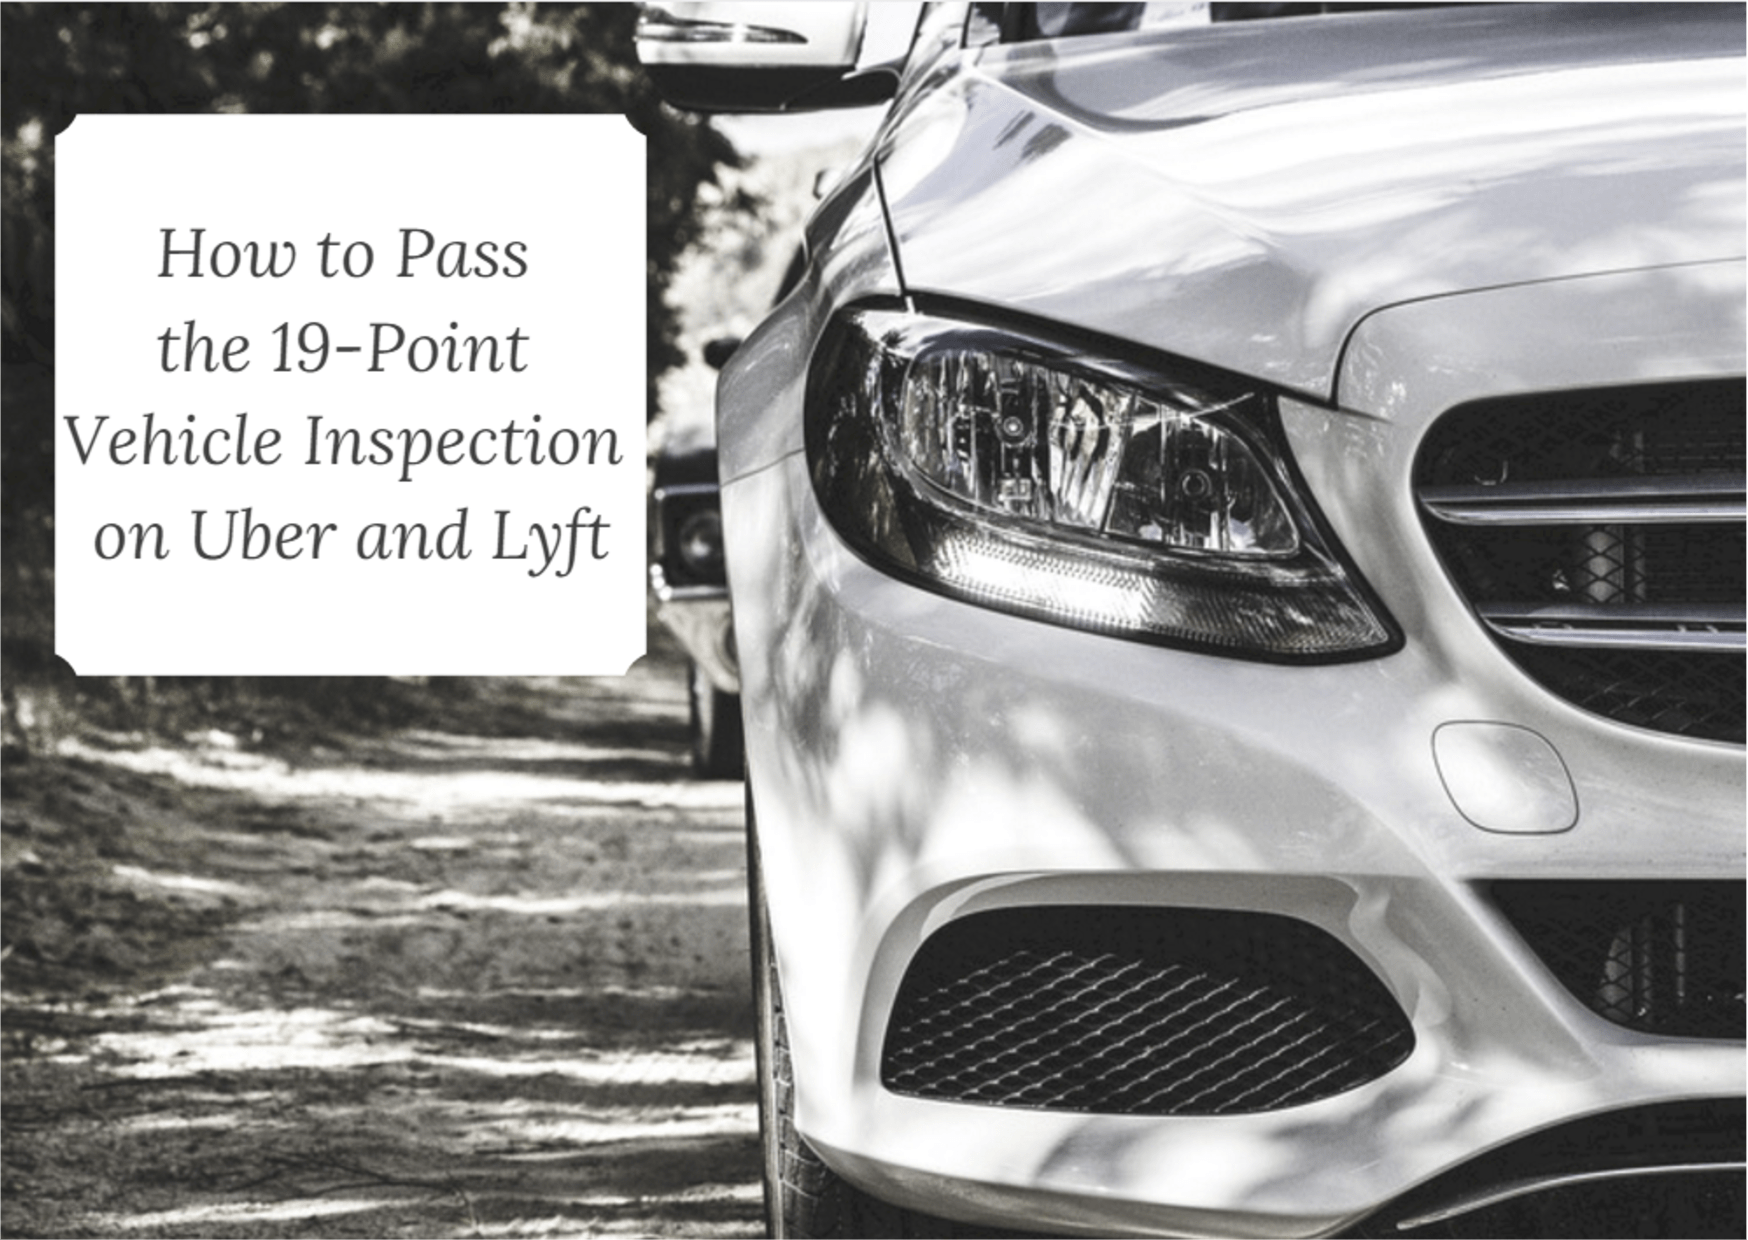 How to Pass the 19-Point Vehicle Inspection - The Official HyreCar ...